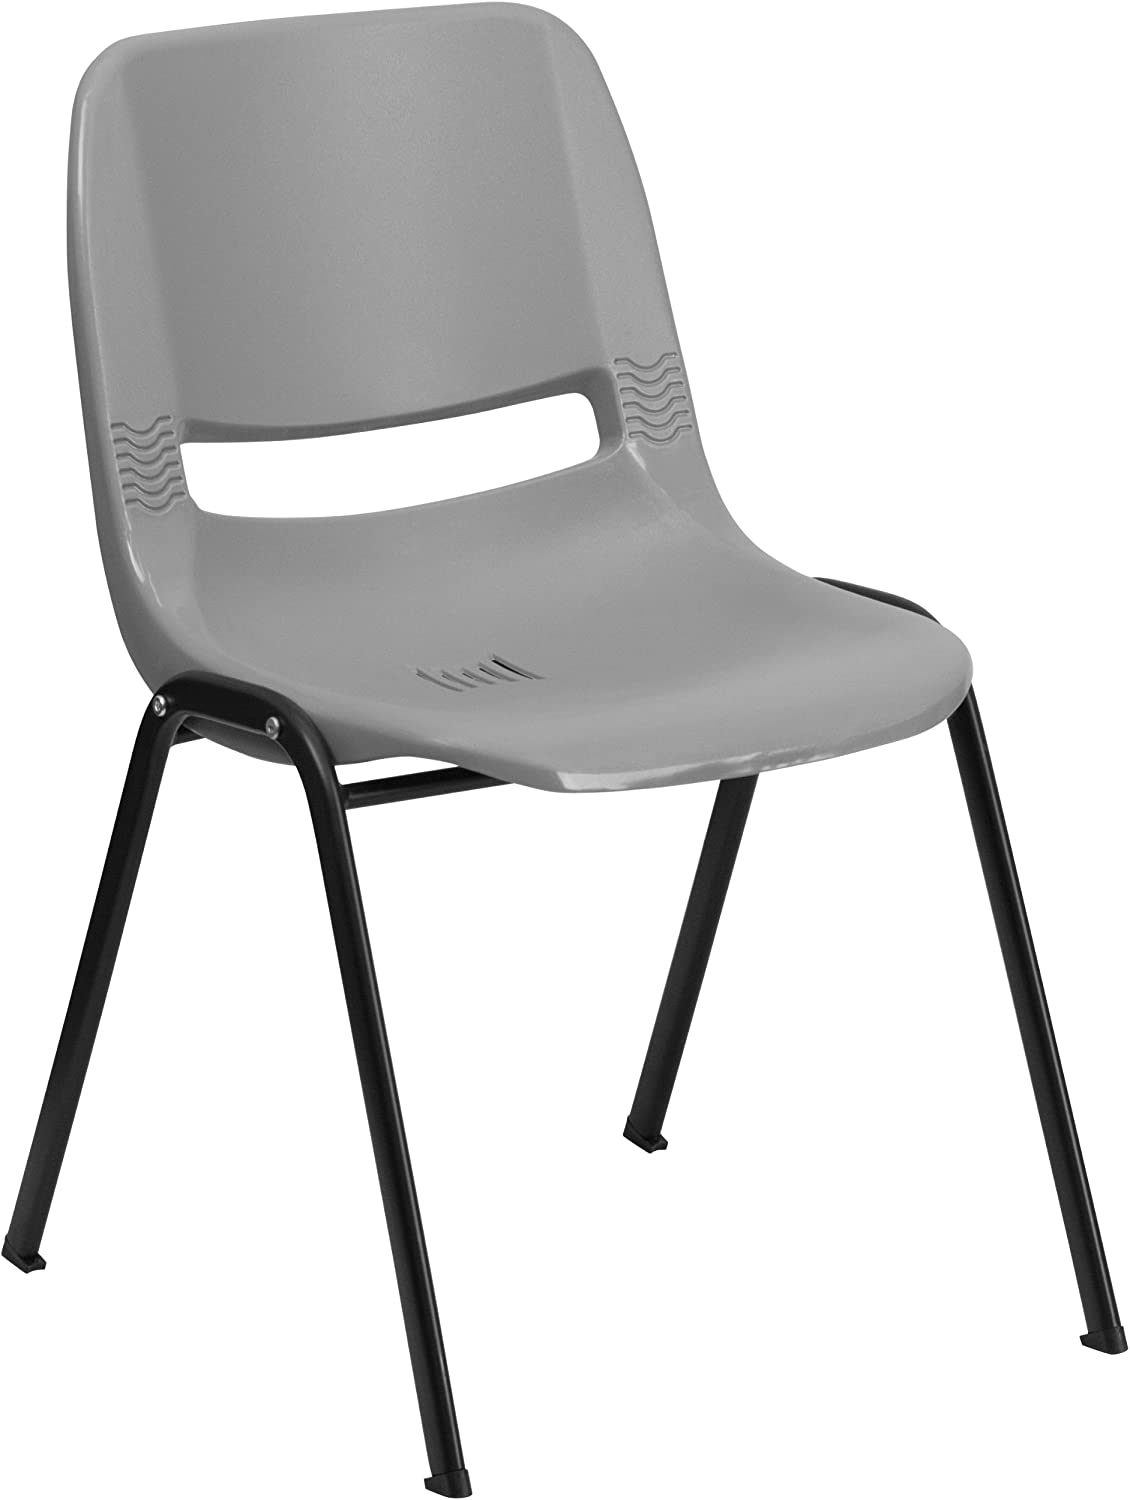 Flash Furniture HERCULES Series 880 lb. Capacity Gray Ergonomic Shell Stack Chair with Black Frame